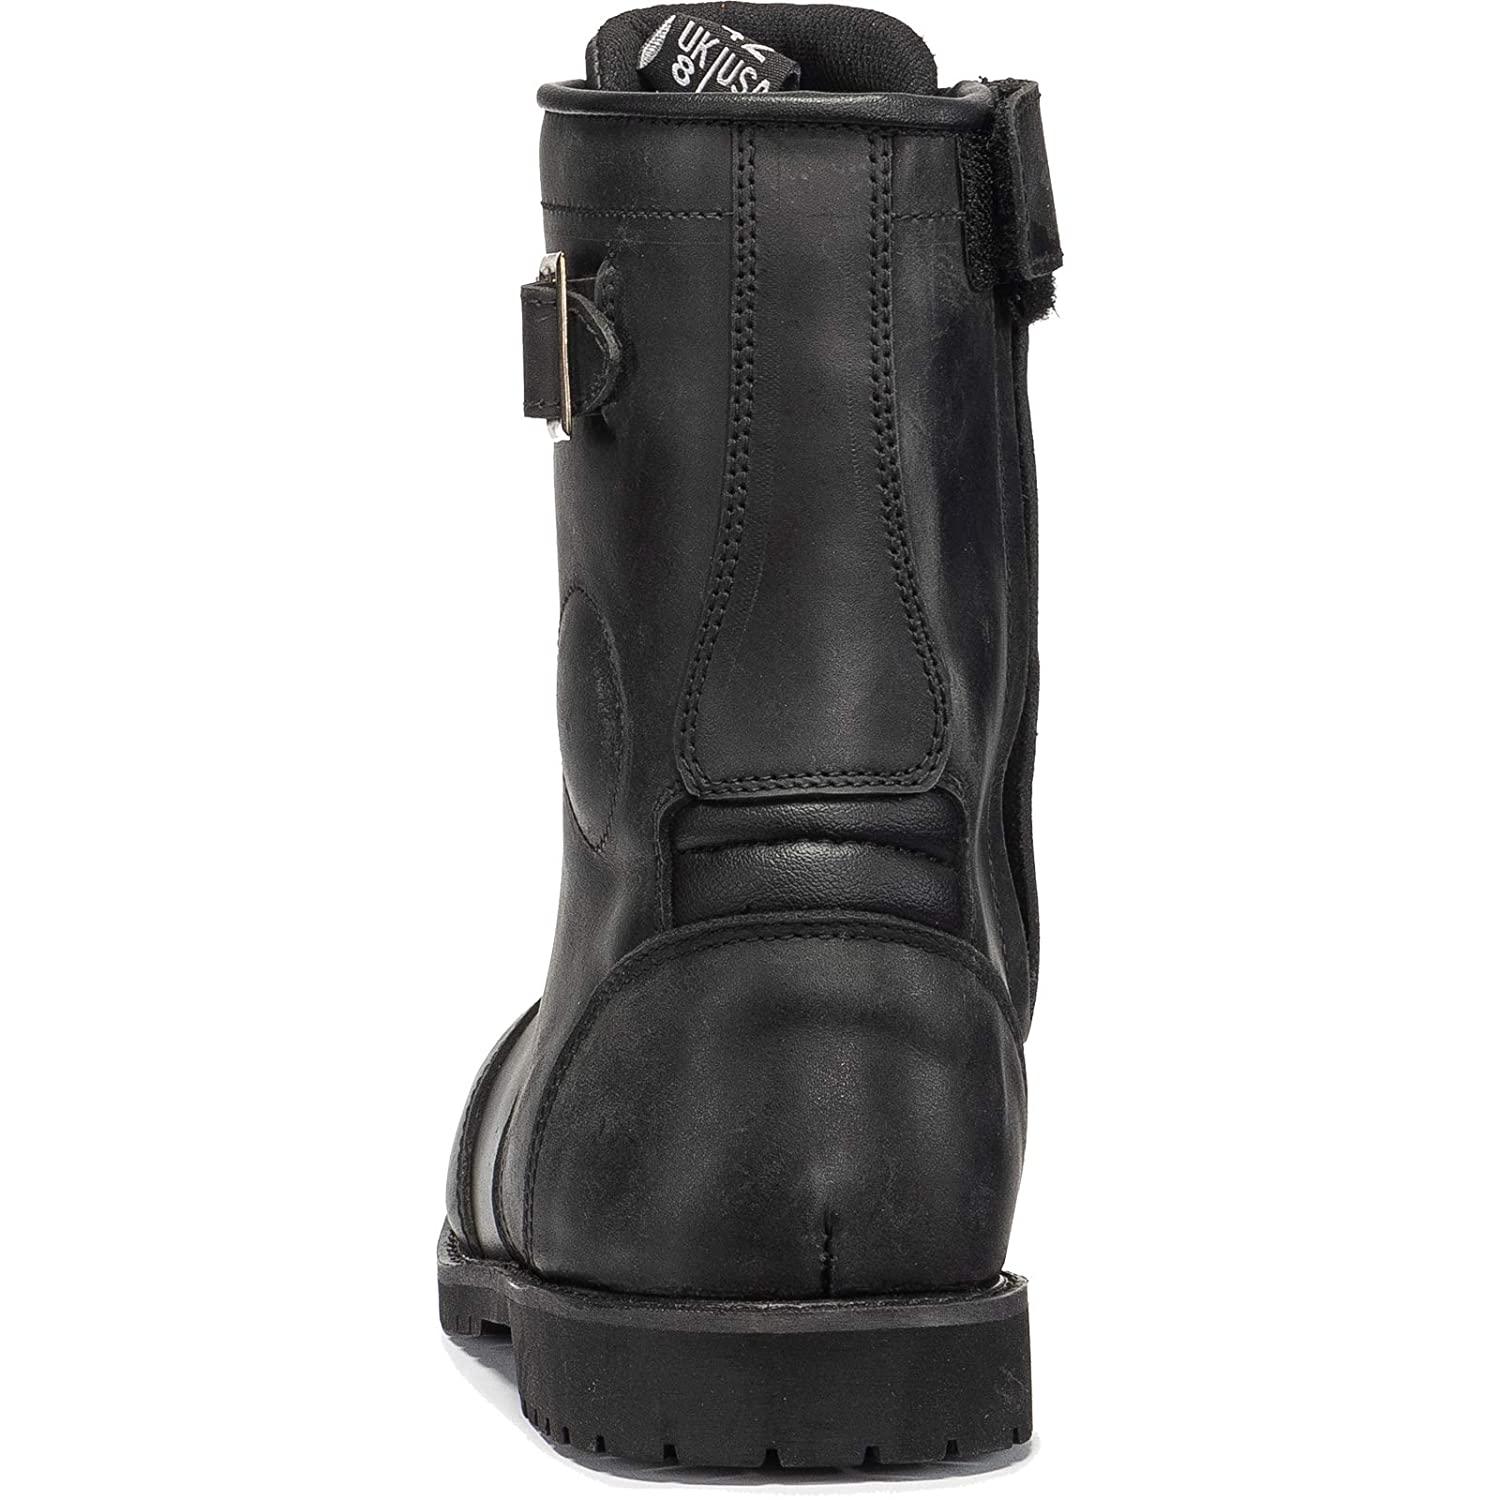 Black Heritage WP Motorcycle Boots